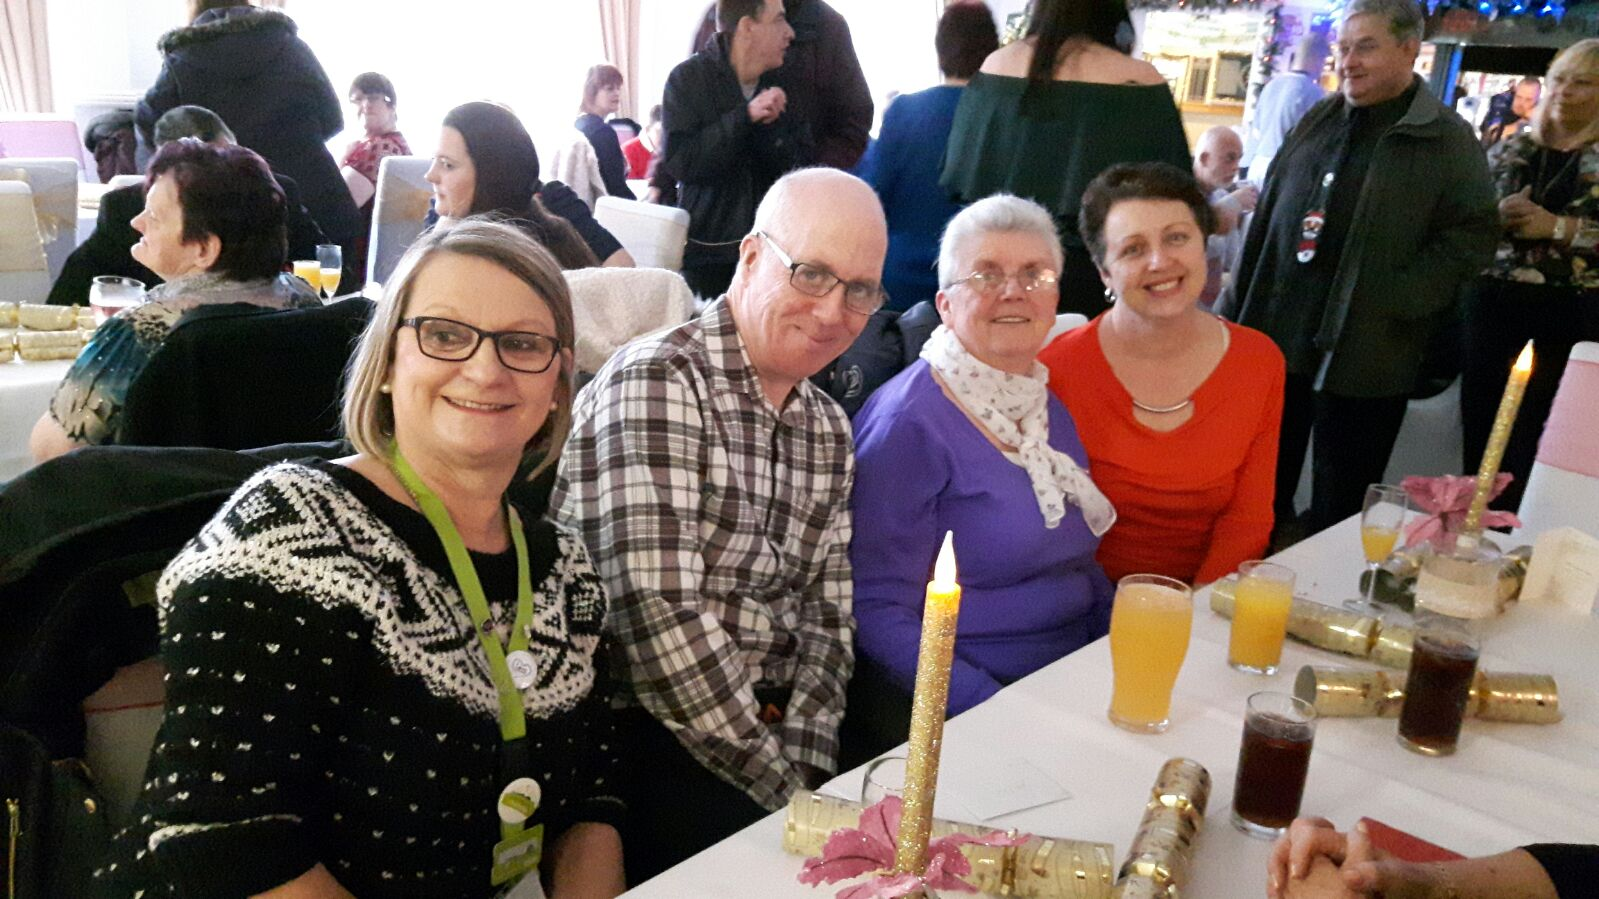 ASDA Support Willow Christmas Party